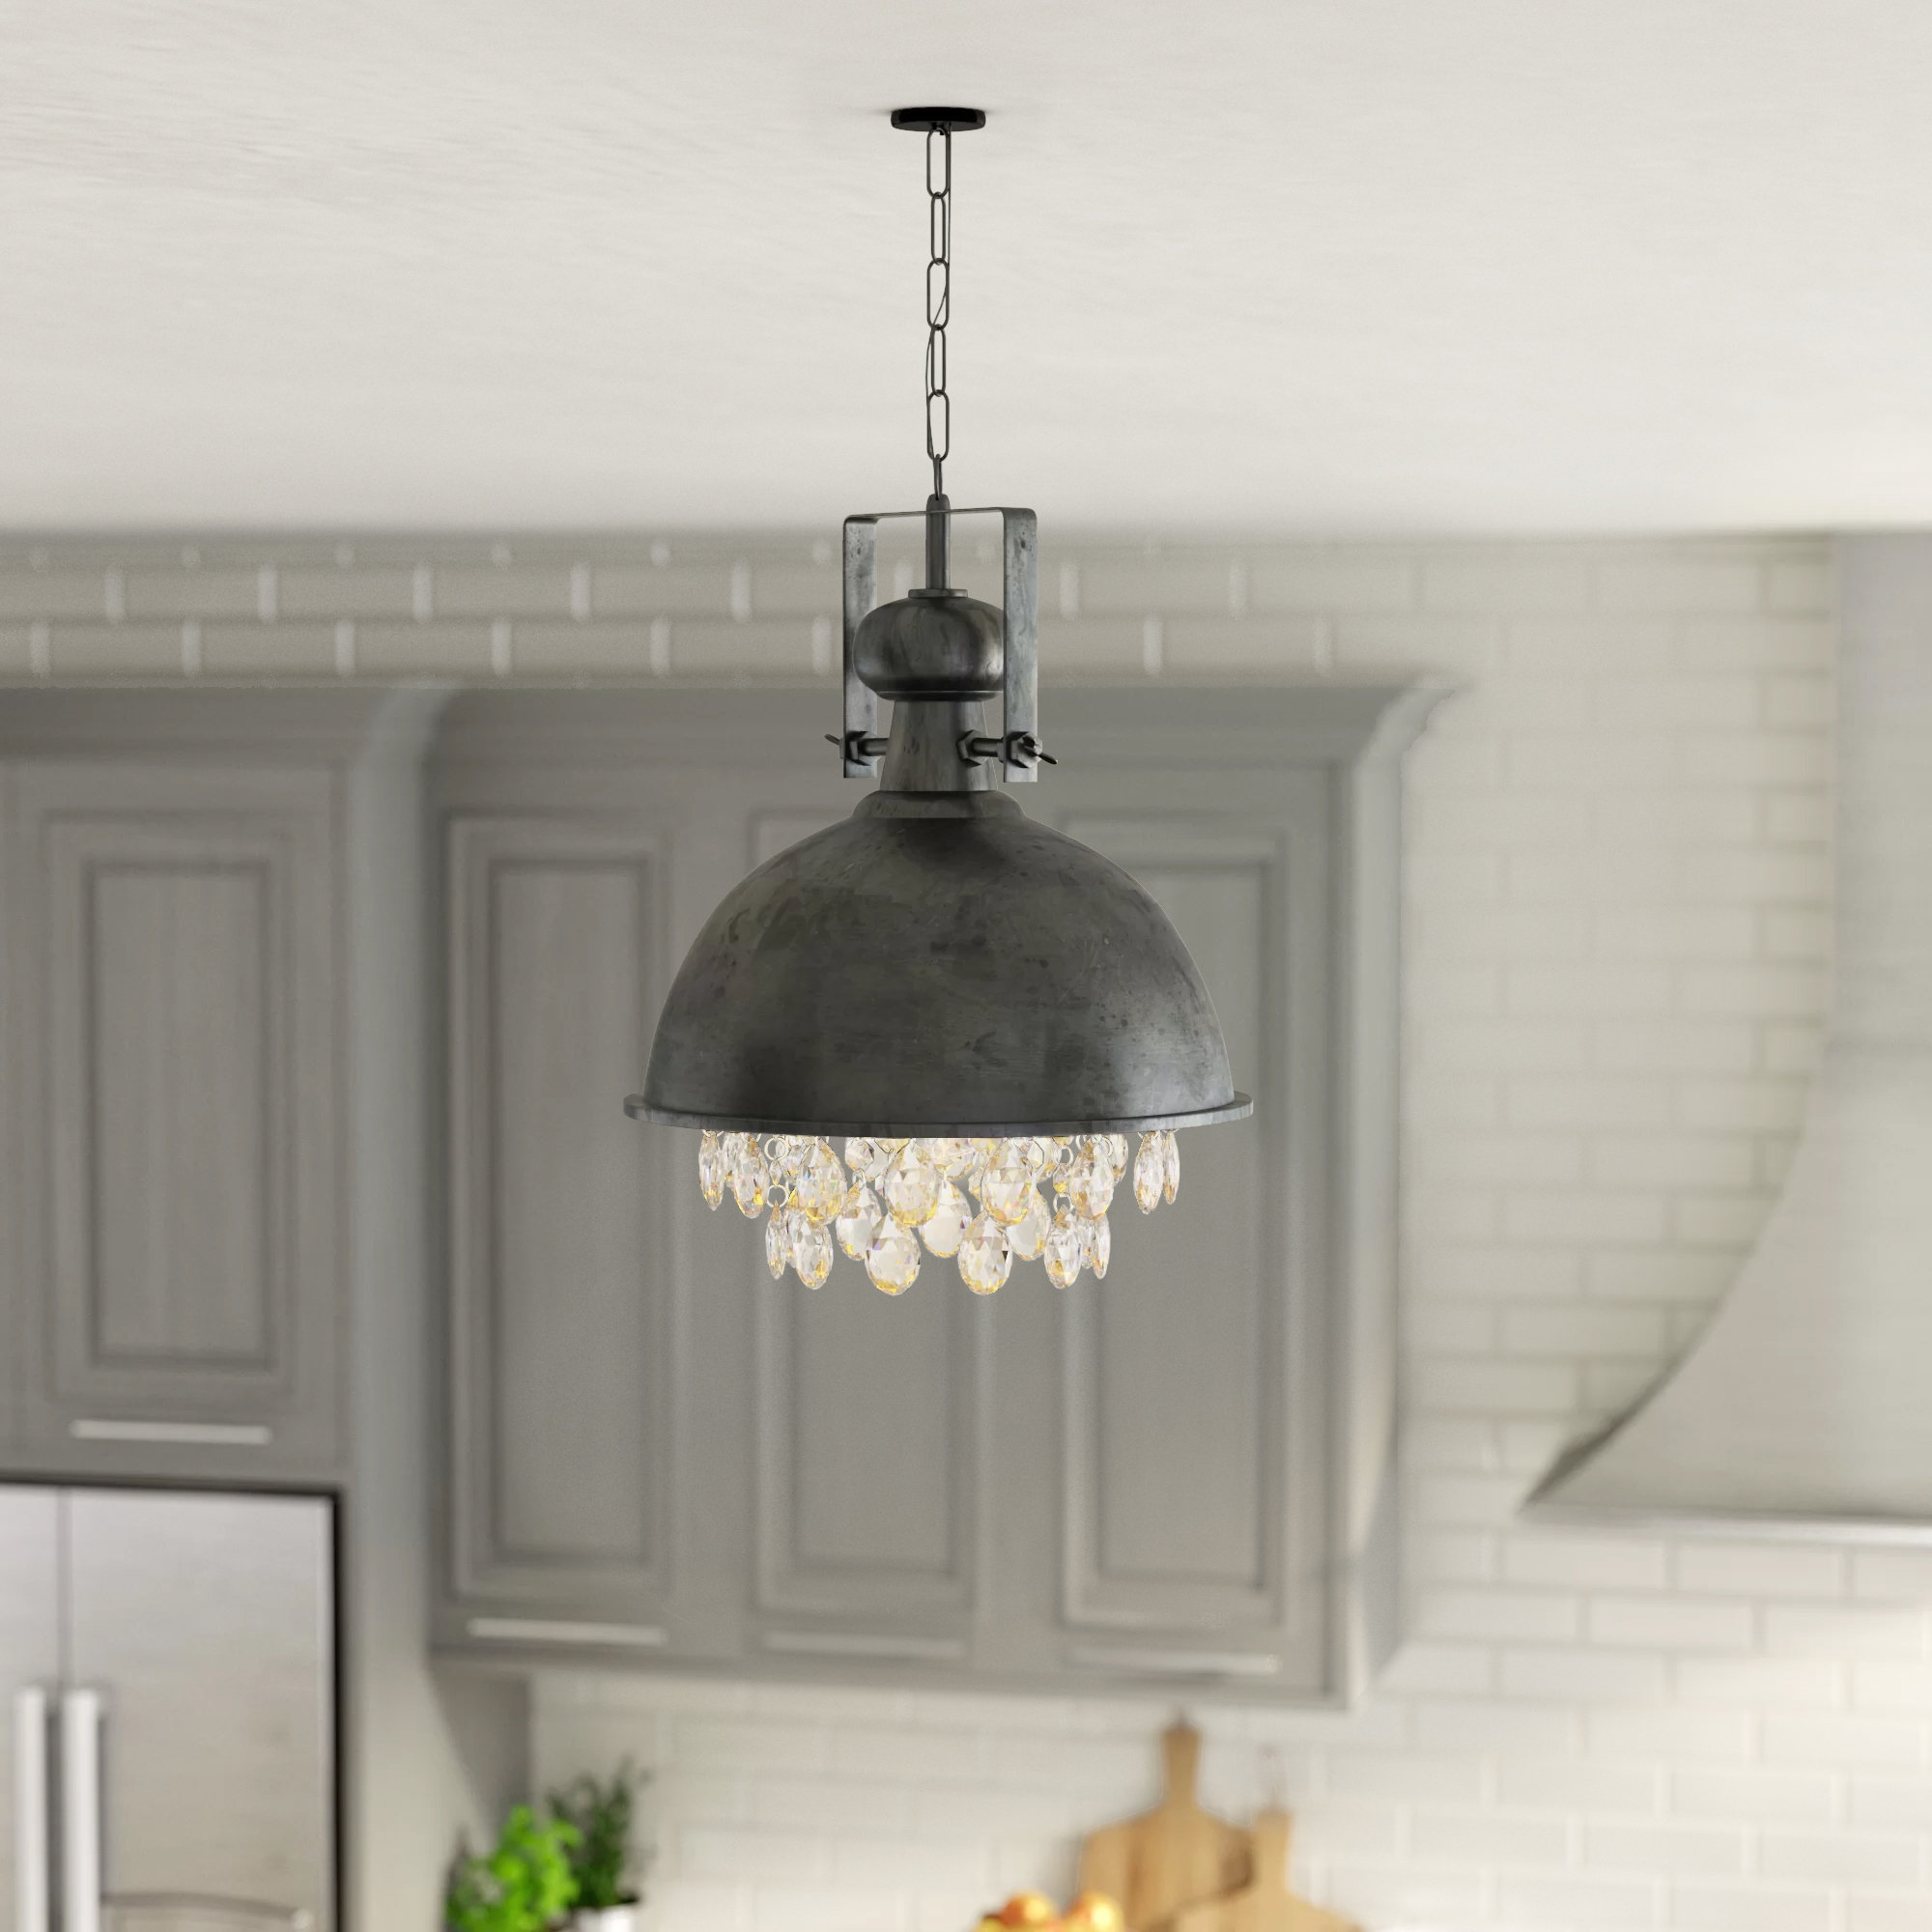 Rosenbloom 1 – Light Dome Pendant Pertaining To Well Liked Monadnock 1 Light Single Dome Pendants (View 24 of 25)